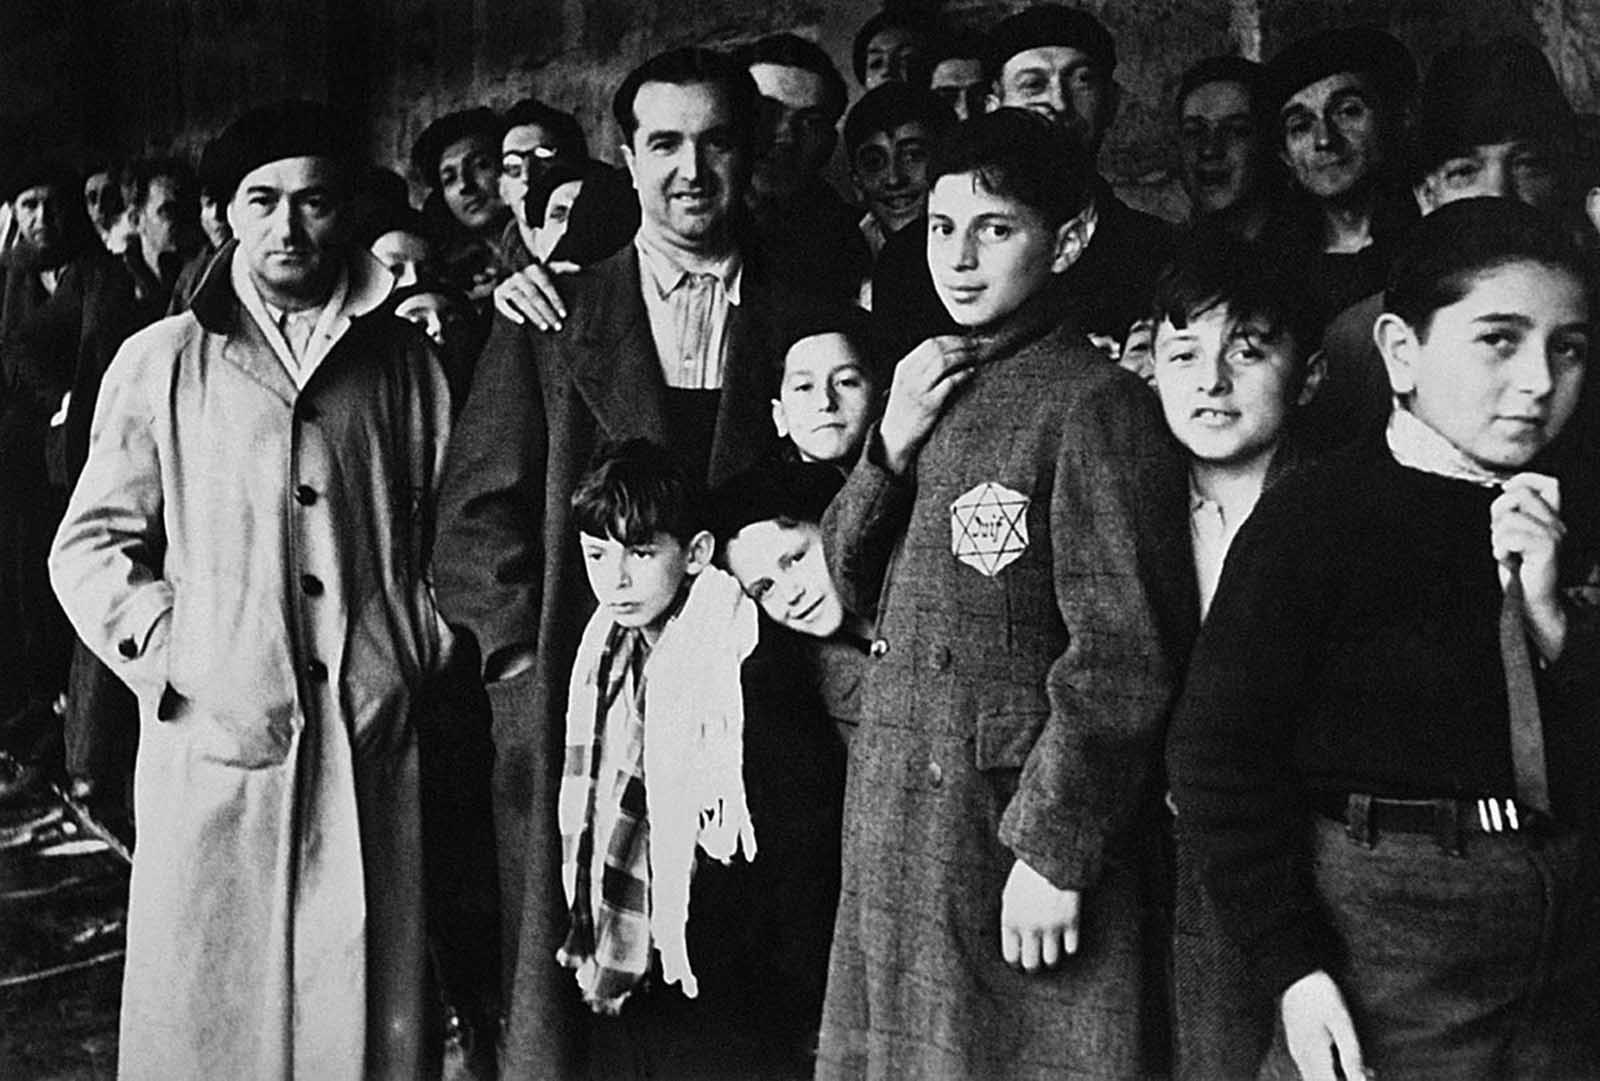 Jewish deportees in the Drancy transit camp near Paris, France, in 1942, on their last stop before the German concentration camps. Some 13,152 Jews (including 4,115 children) were rounded up by French police forces, taken from their homes to the